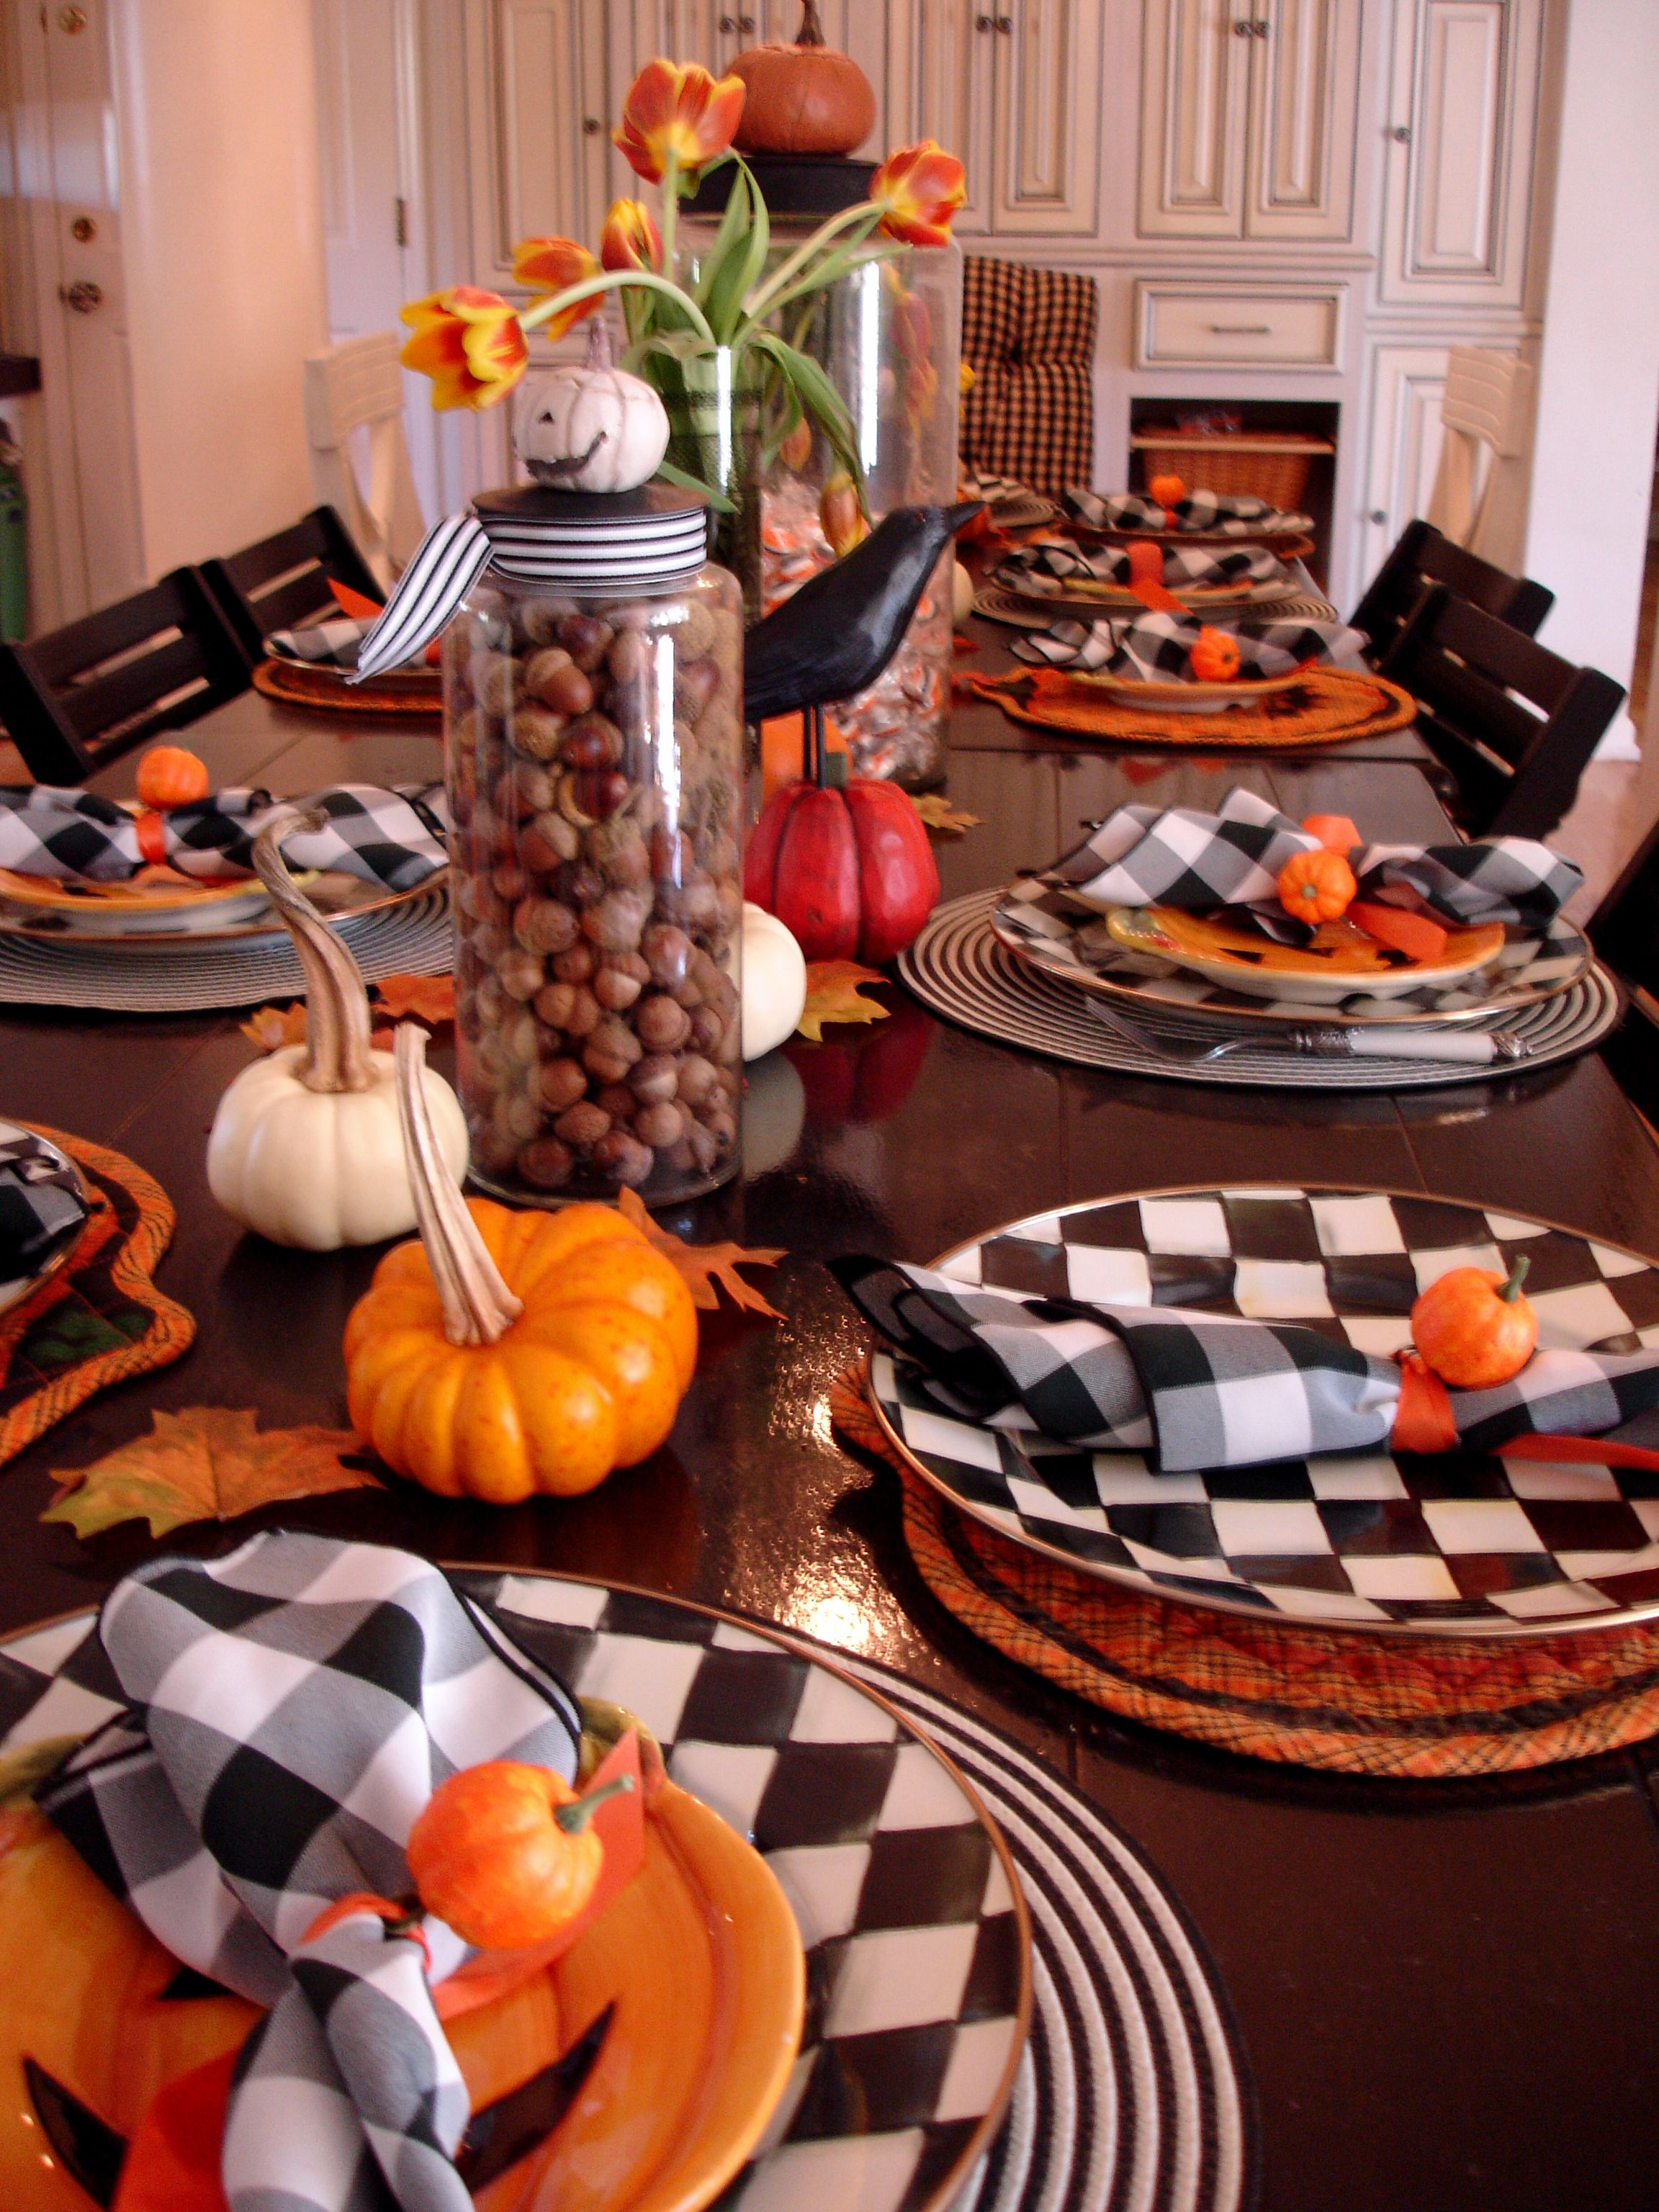 autumn table setting Halloween ) Pinterest Halloween table - Halloween Table Decorations Pinterest